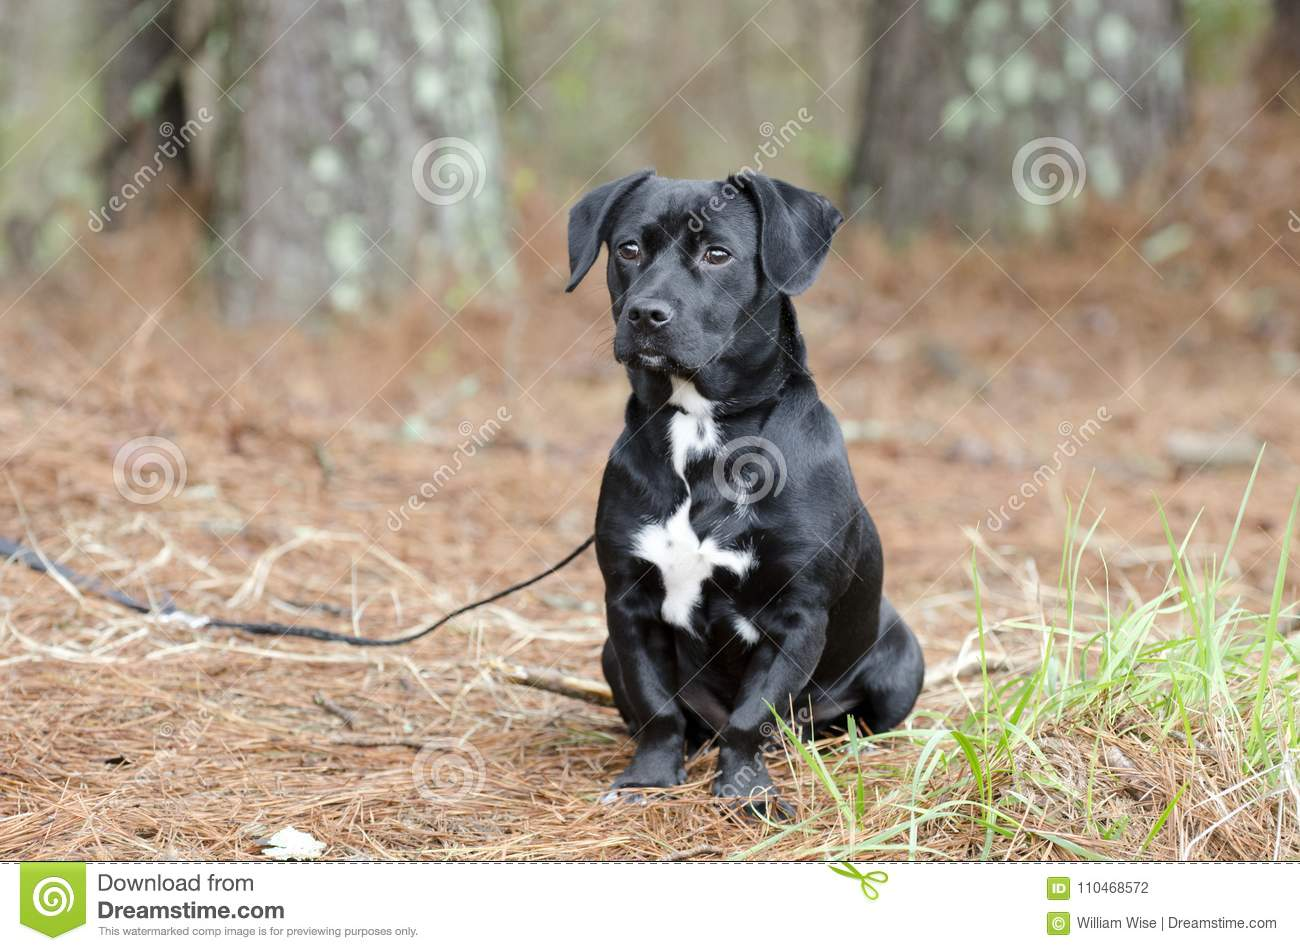 Cute Black Beagle Dachshund Mixed Breed Puppy Dog Mutt Stock Photo Image Of Breed Dachshund 110468572